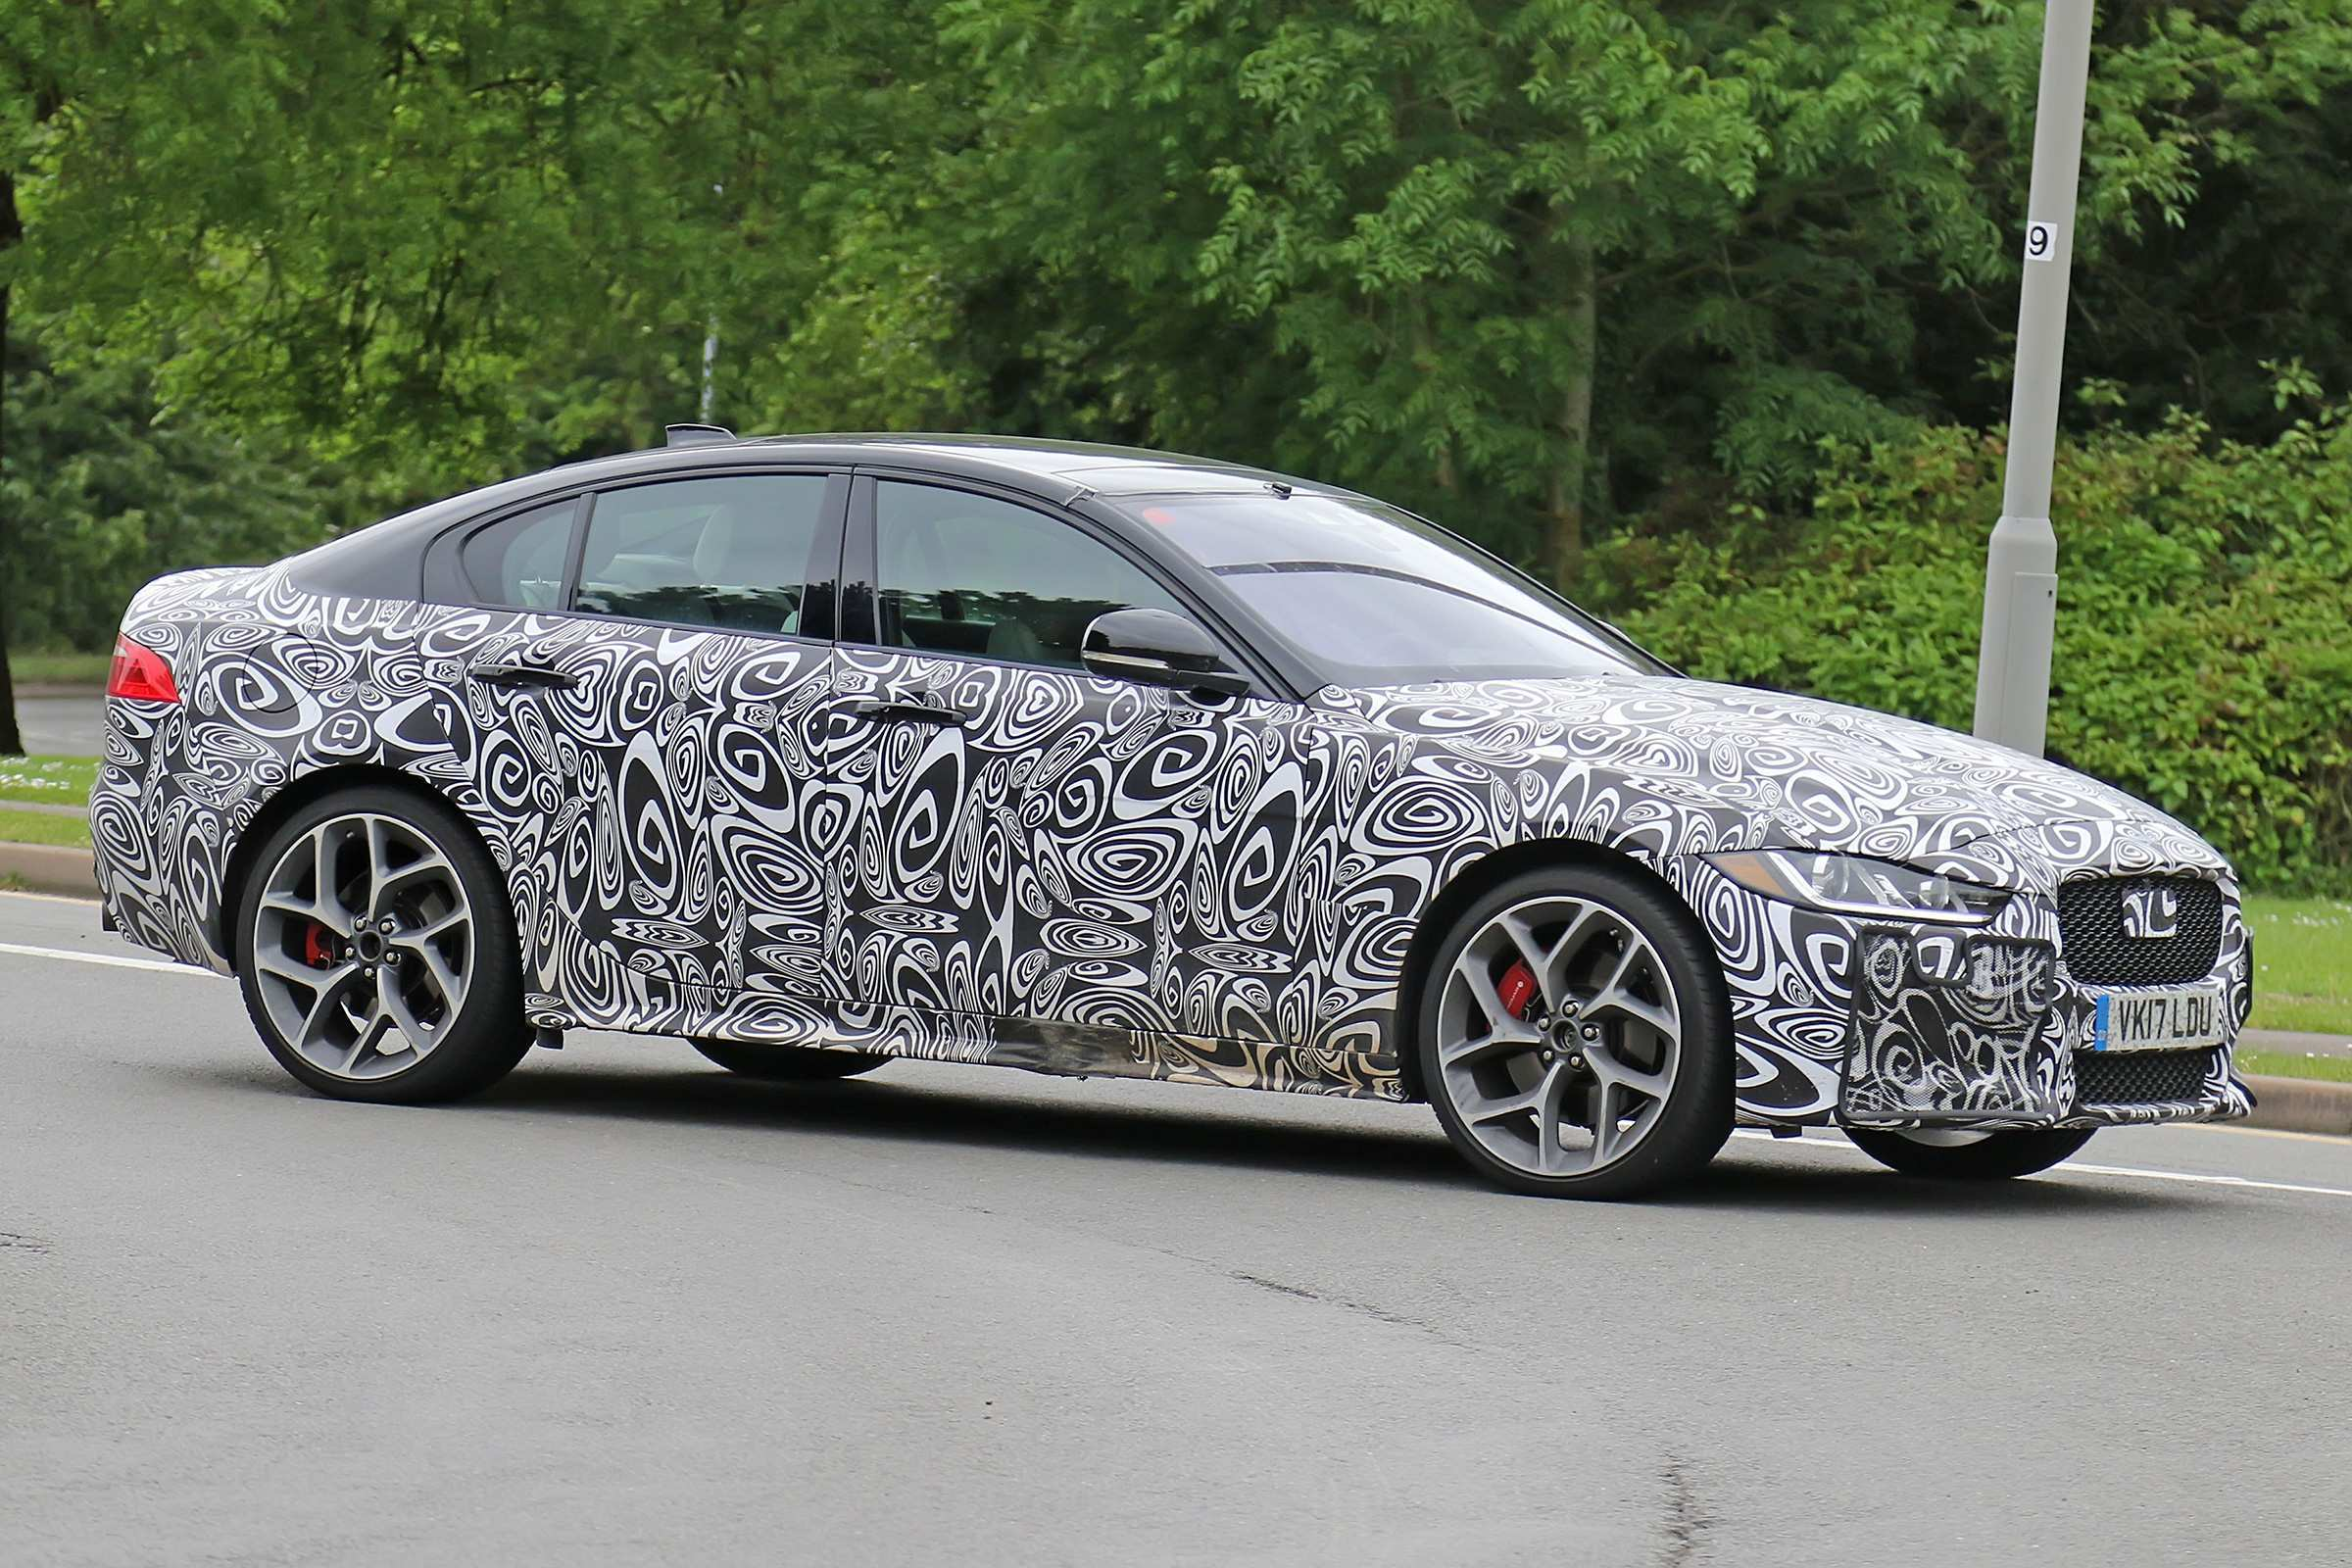 24 New 2019 Jaguar Xe Svr Pictures with 2019 Jaguar Xe Svr